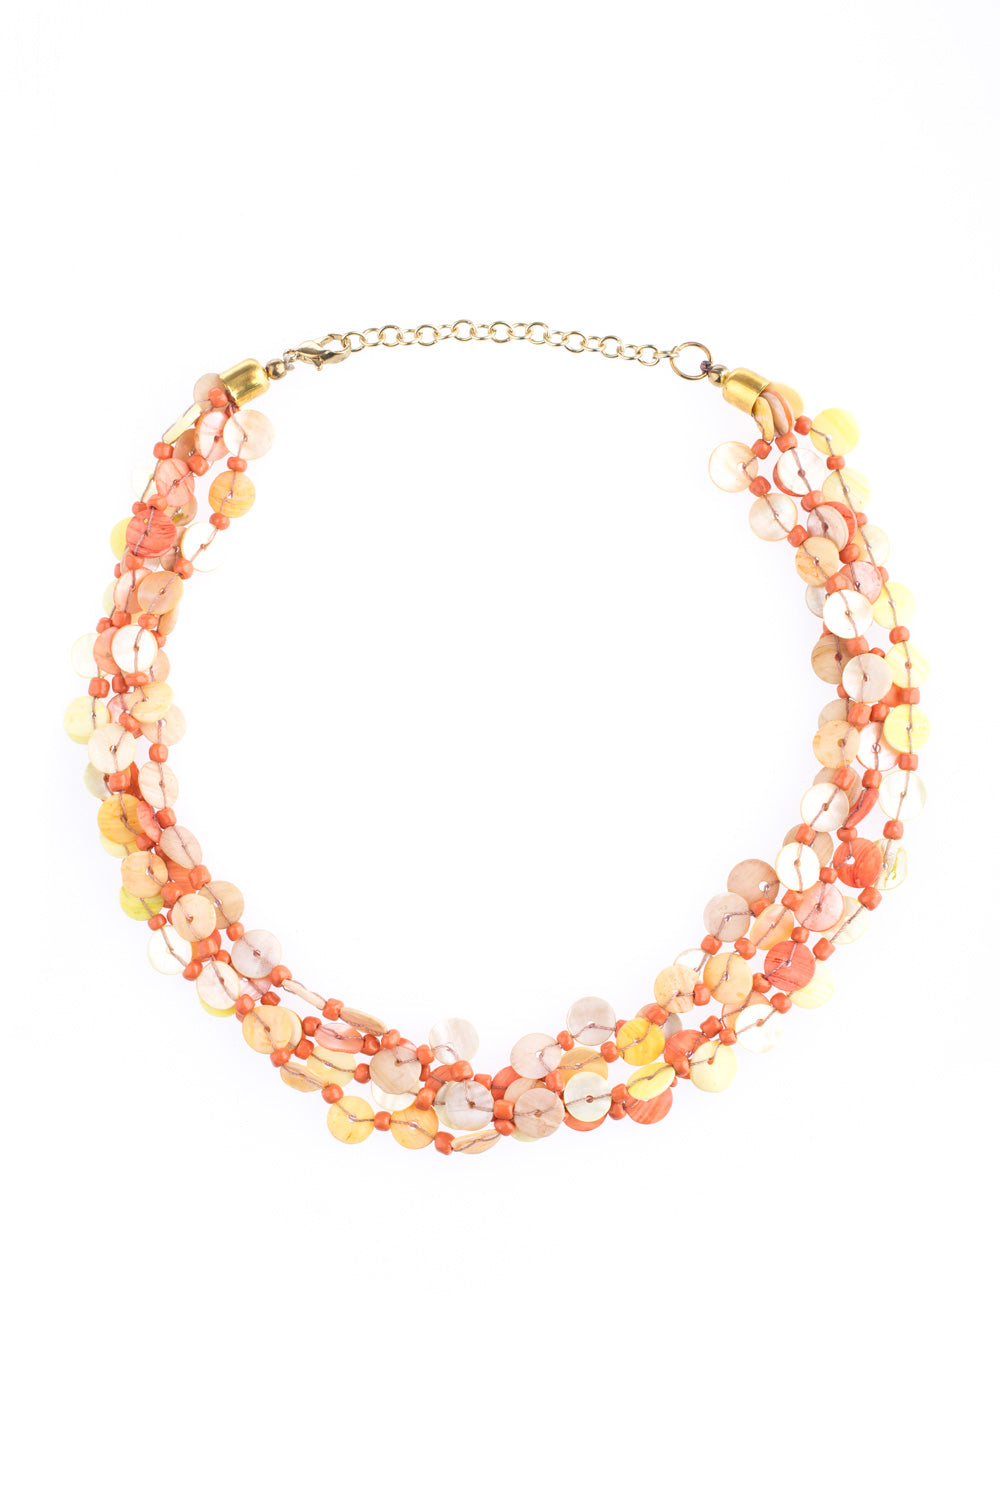 Type 1 Peachy Keen Necklace